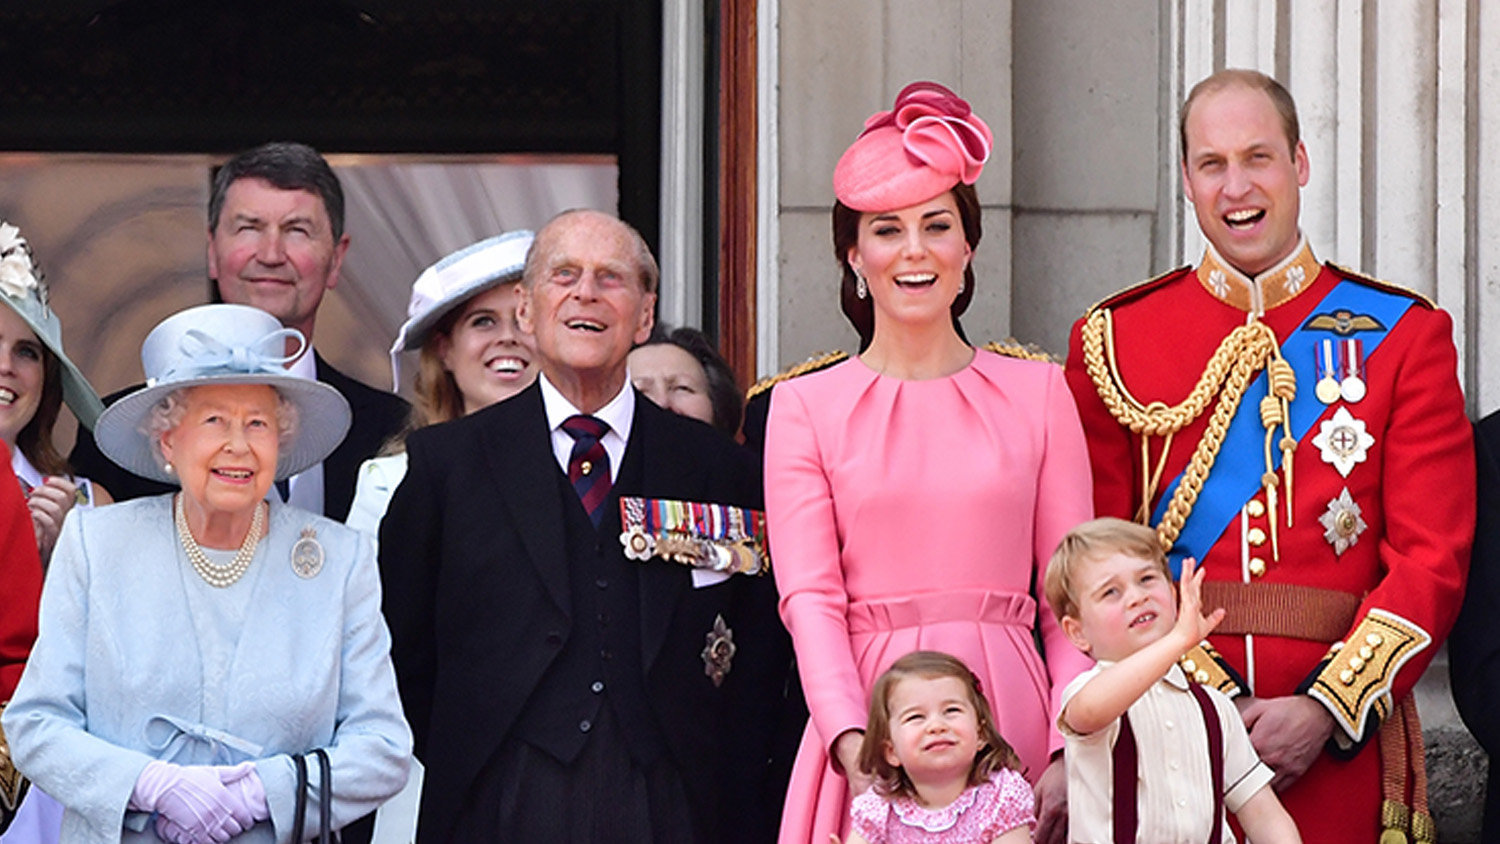 the british monarchy A guide to the british royal family through the eyes of students who live in england answers to the most asked questions about the uk monarchy.